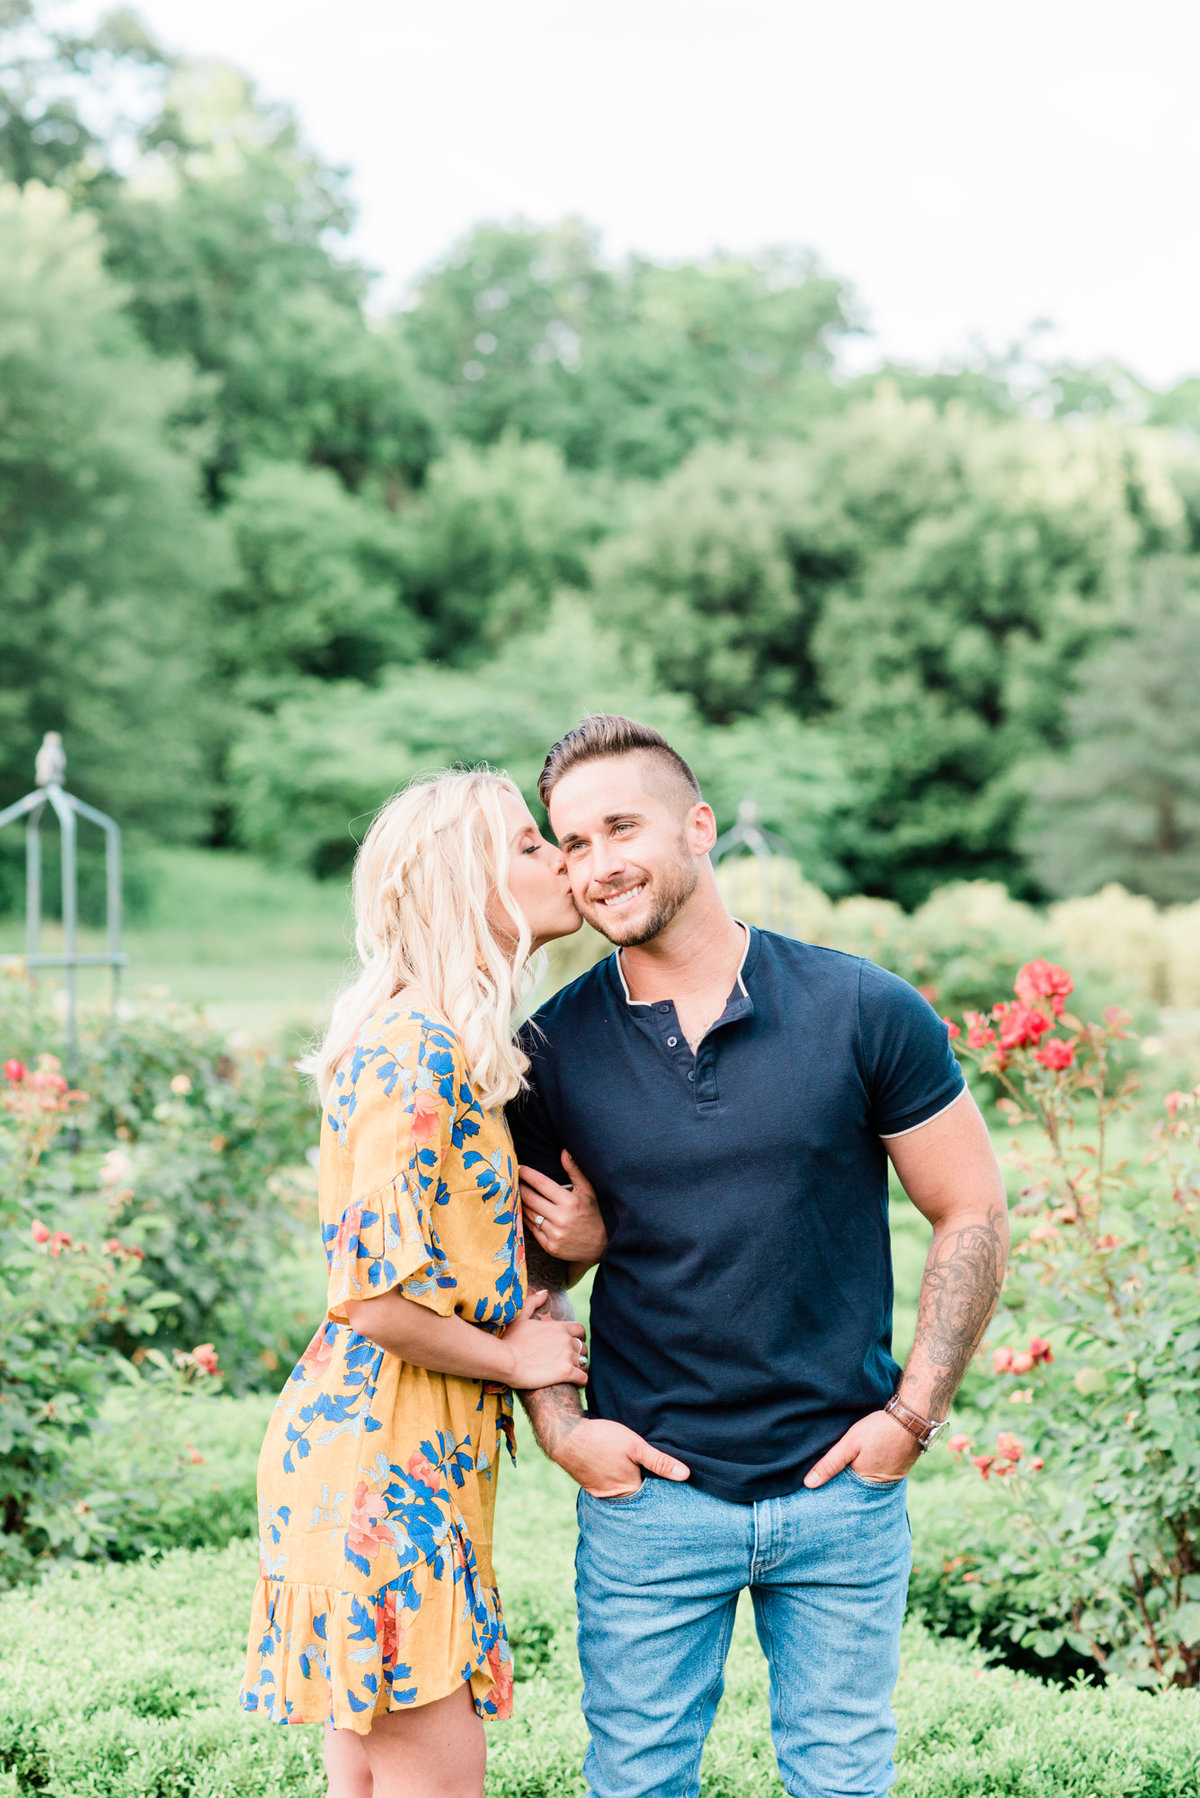 nj-wedding-photographer-engagement-session-greenhouse-deep-cut-gardens-photo-019